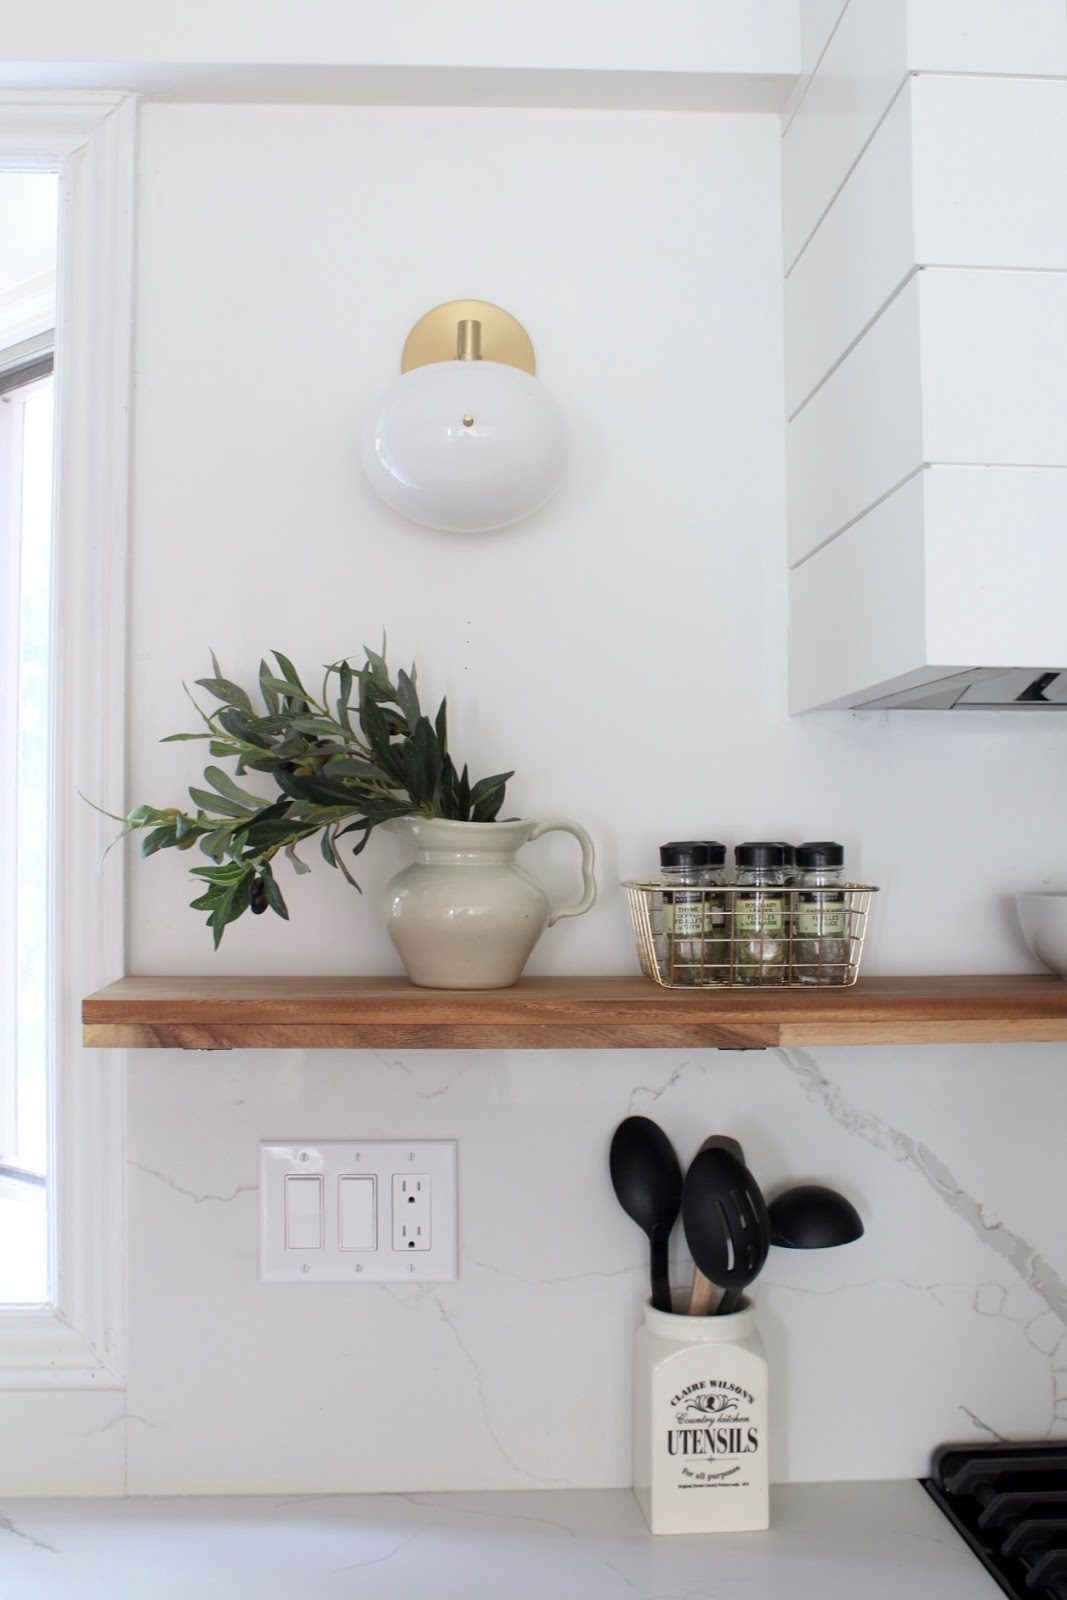 Top 5 Wall Sconces for the Kitchen